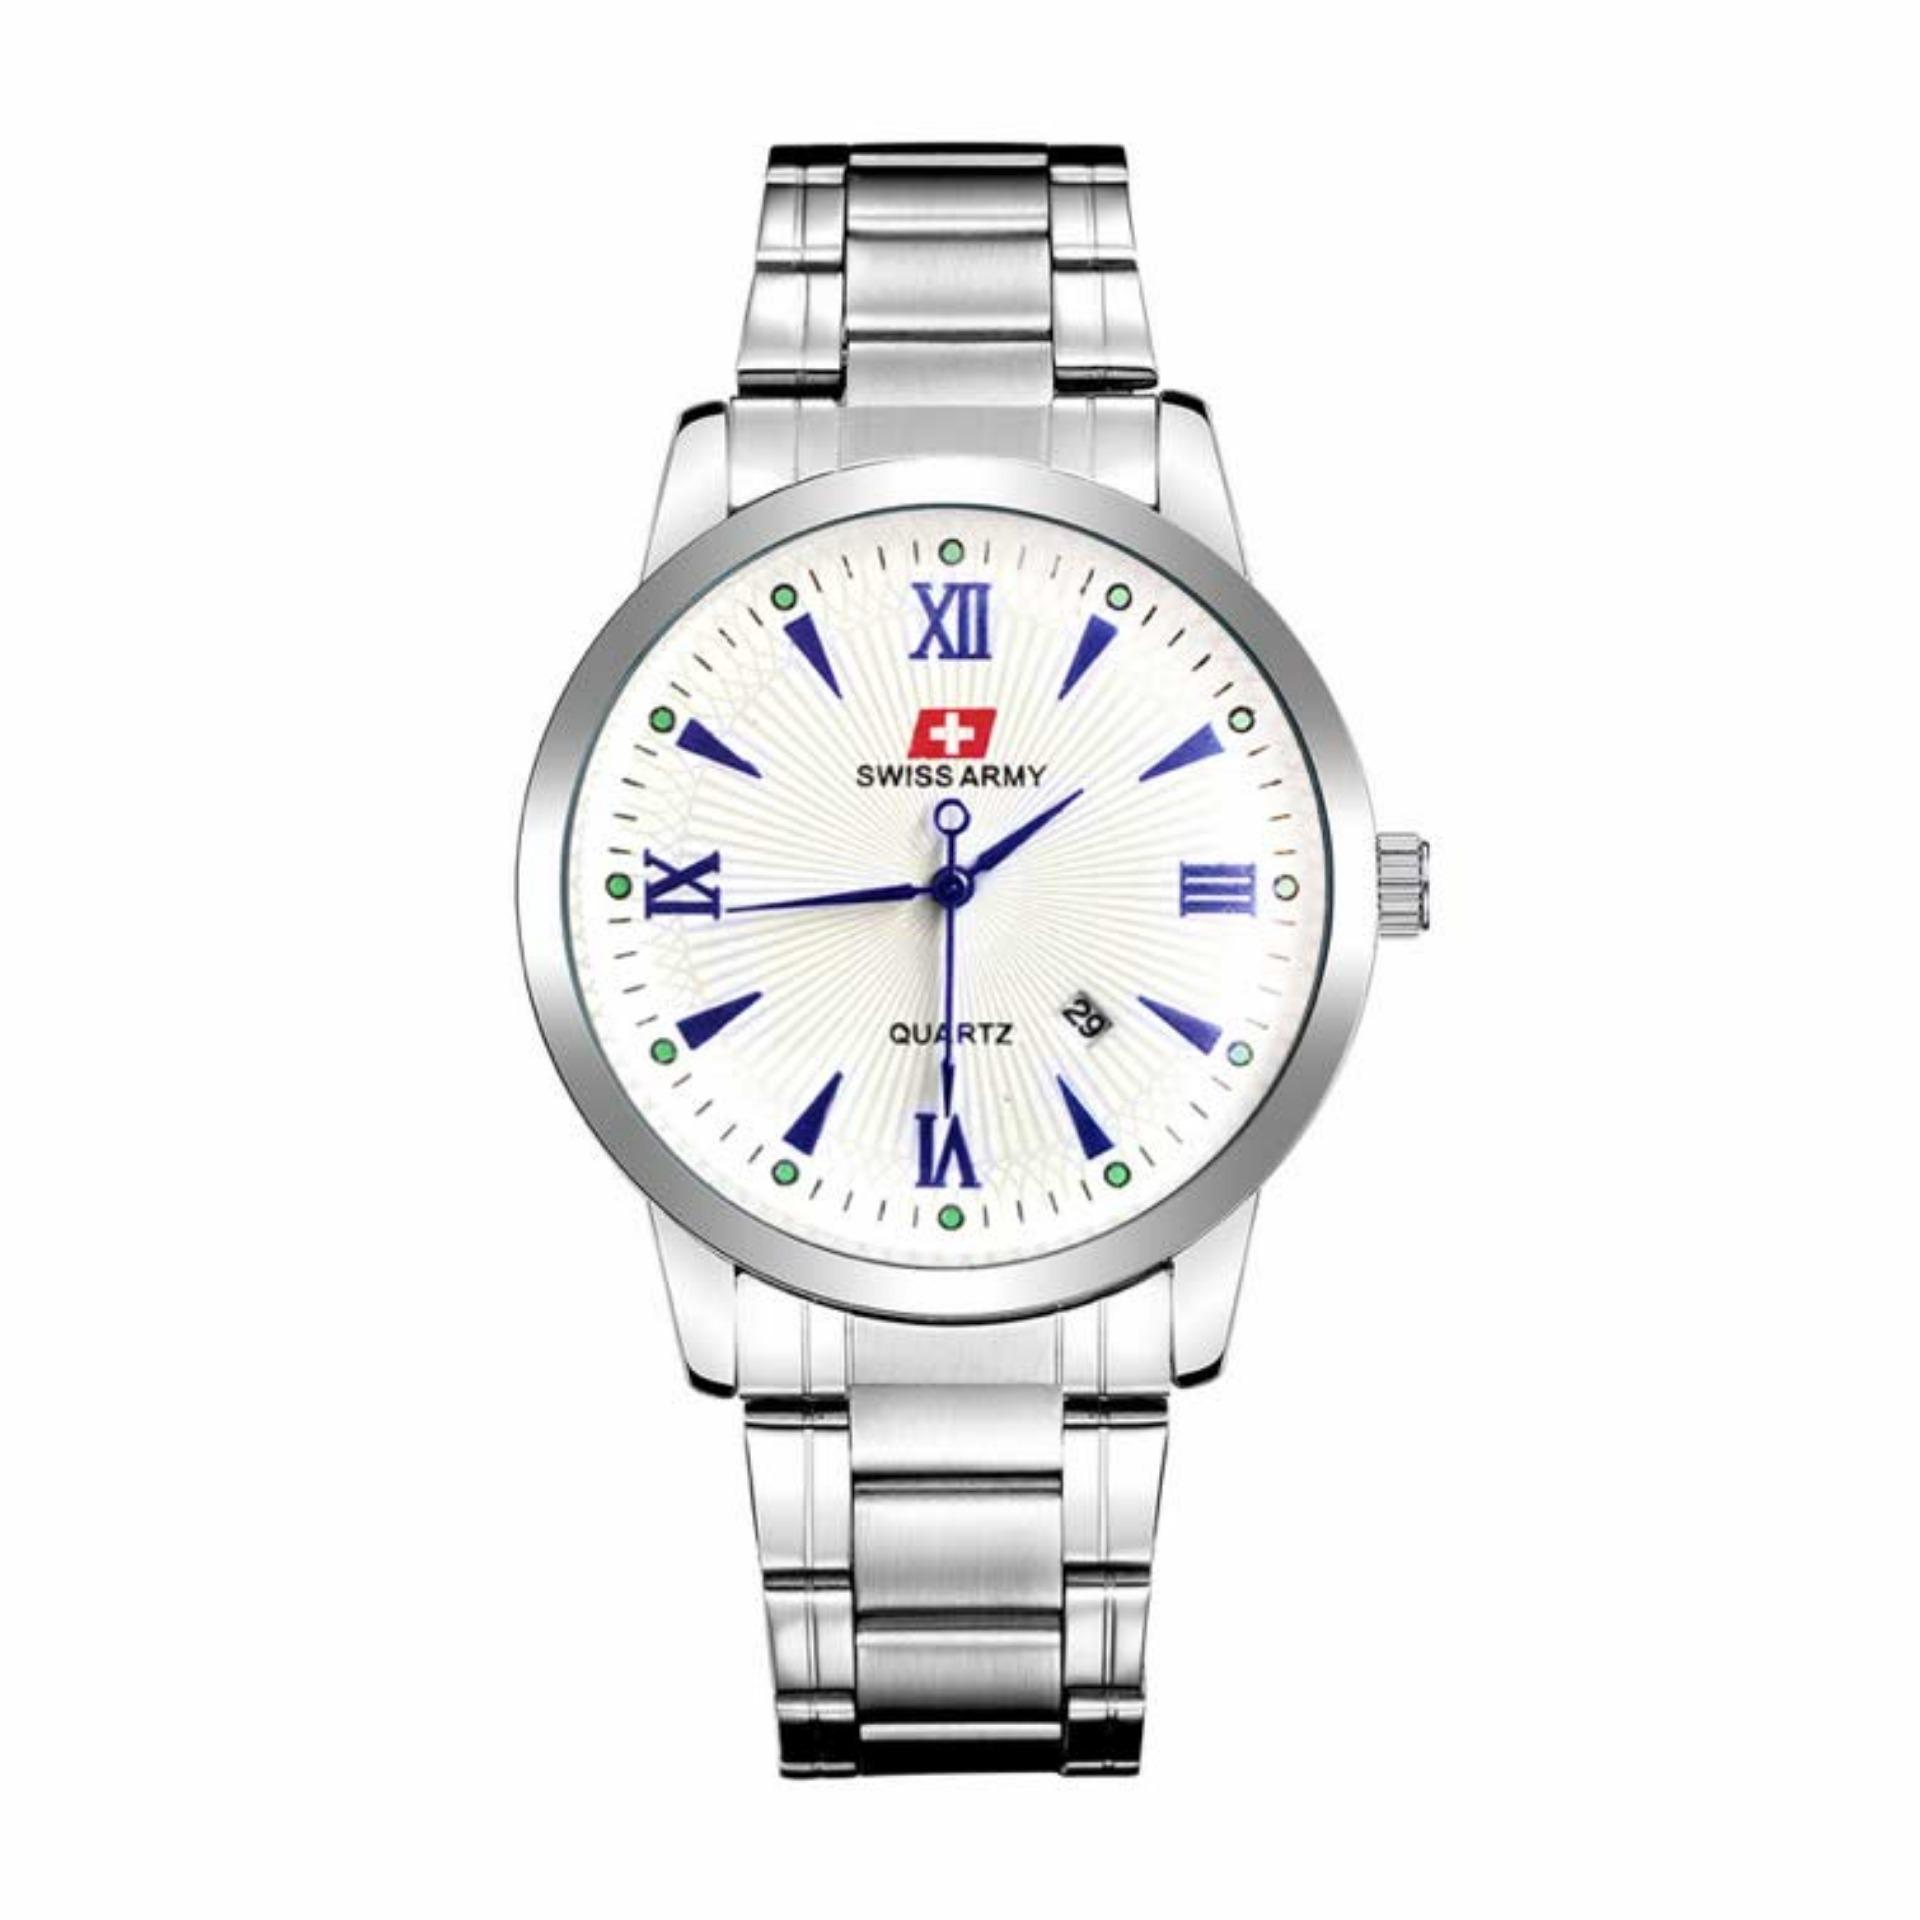 Swiss Army Original - High Quality - Jam Tangan Pria dan Wanita - Strap Stainless Steel - 40 mm